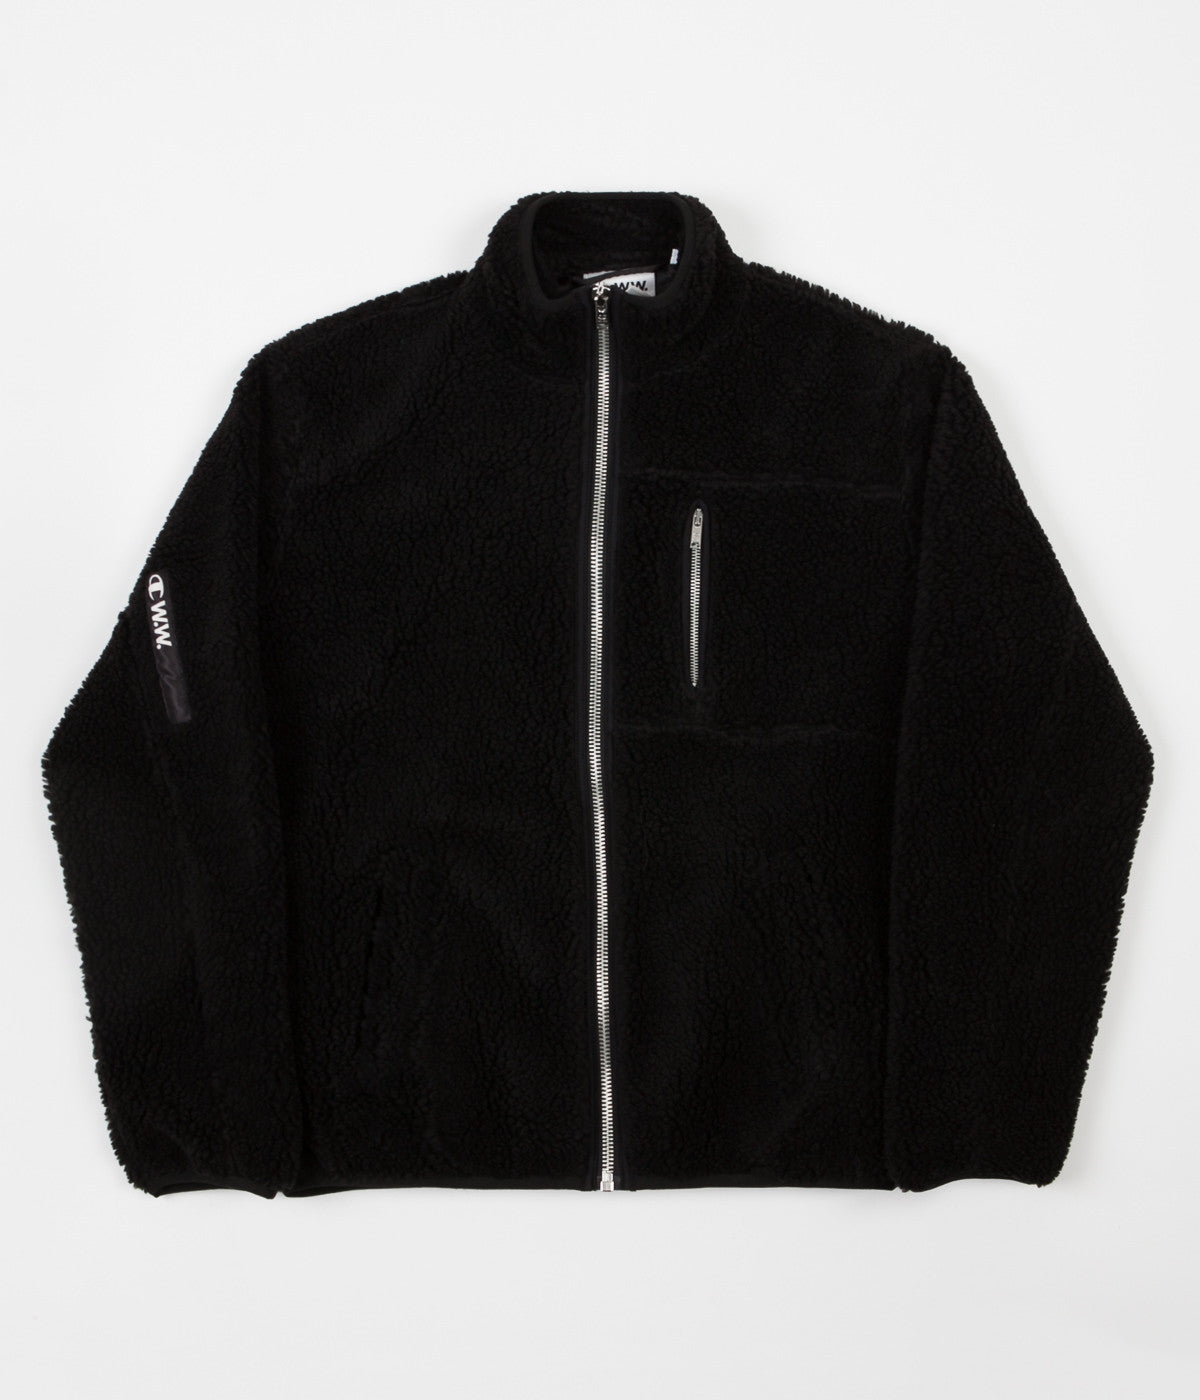 wood wood champion jacket Sale,up to 37% Discounts